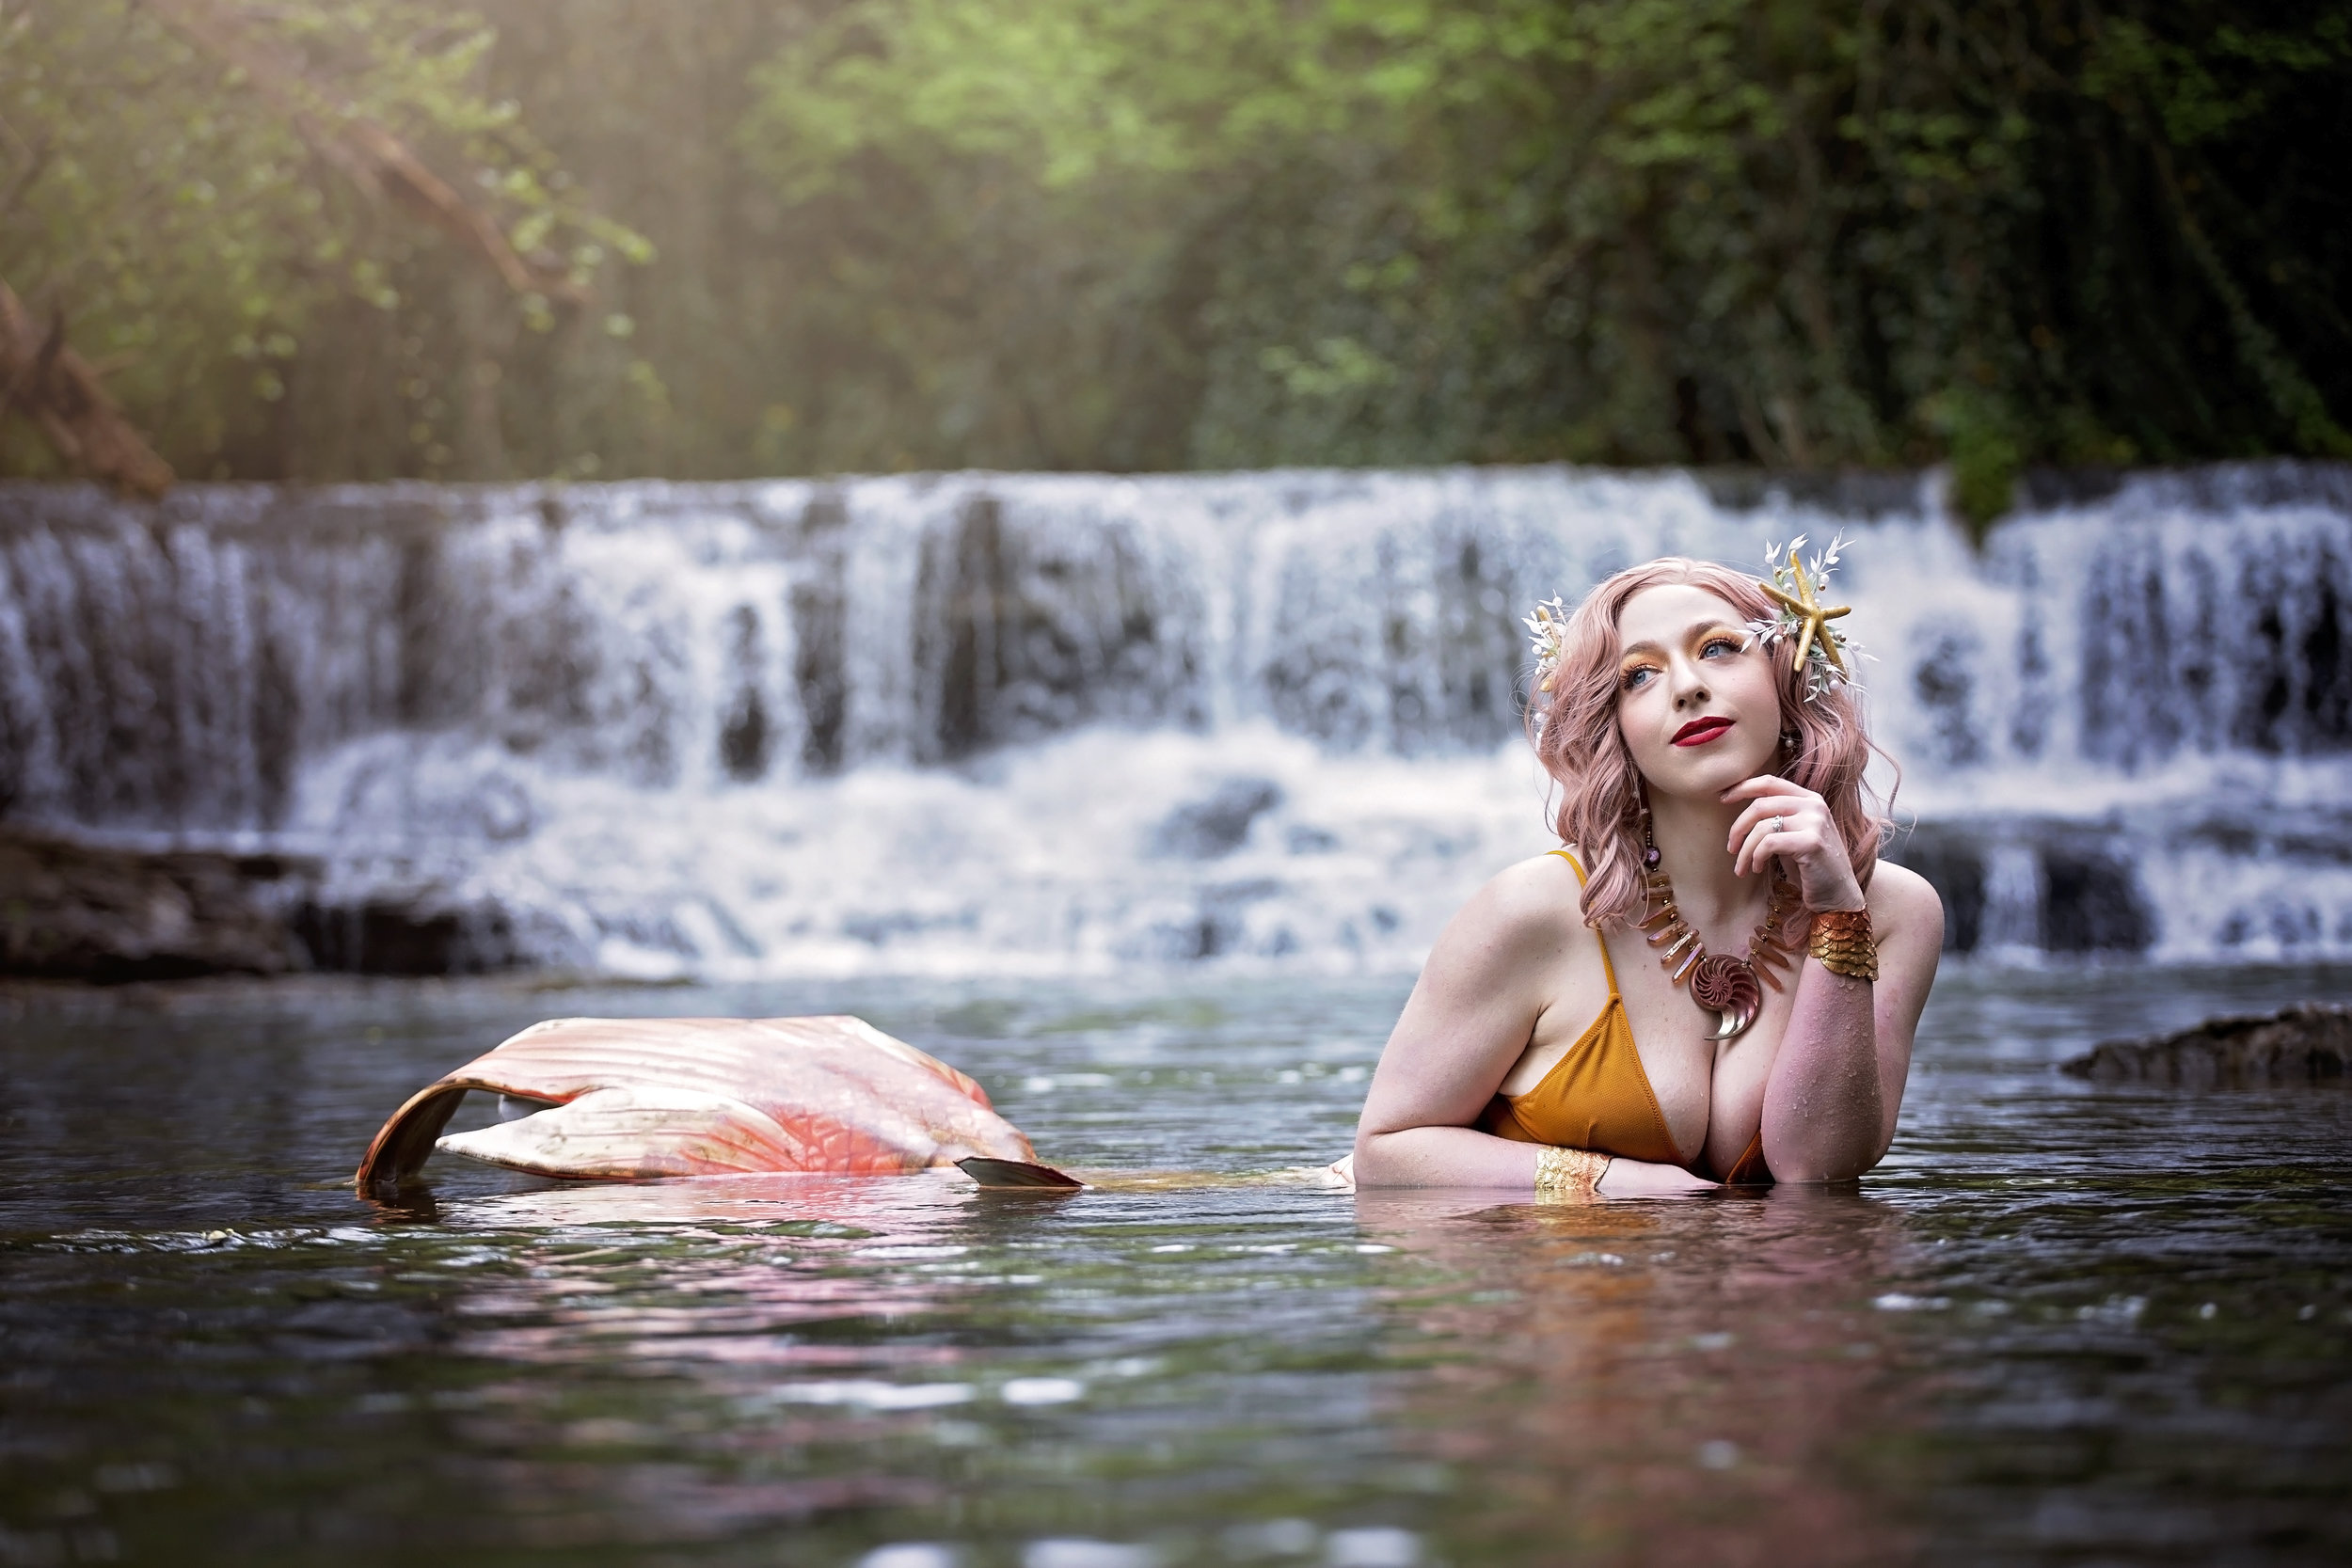 Mermaid : Ms.Faelyn  Photo: Cubster Cosplay Photography